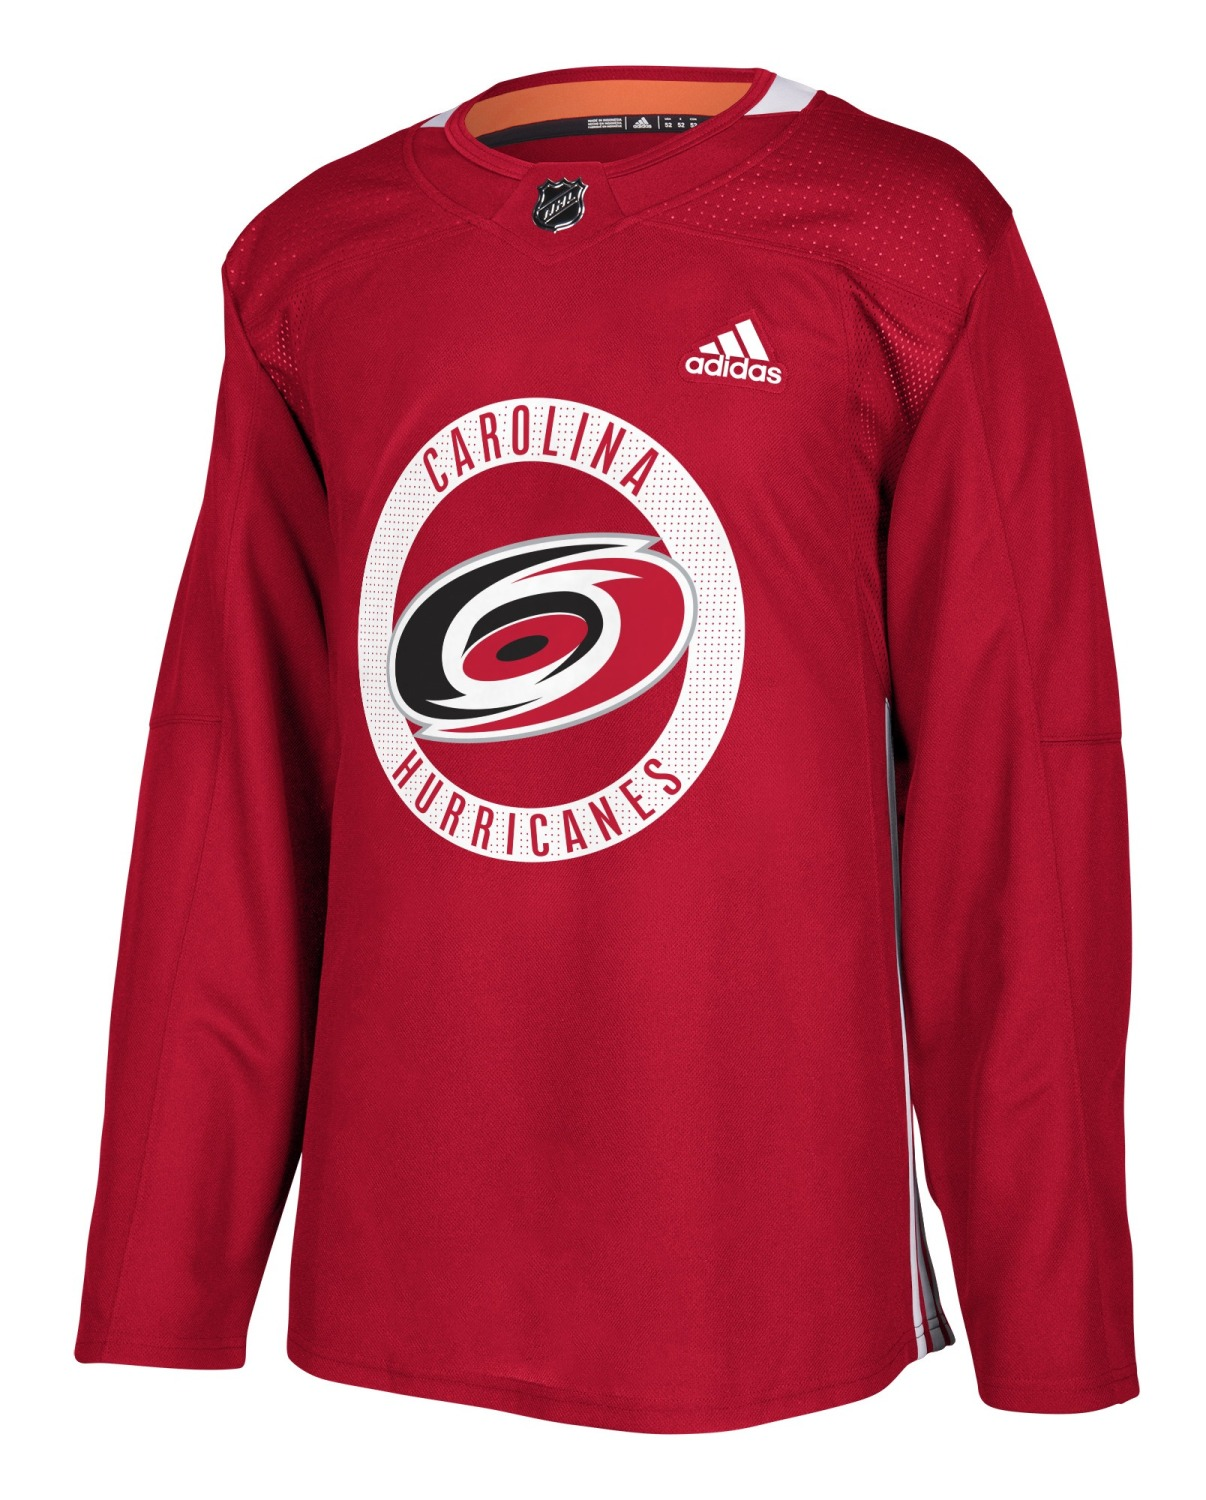 Carolina Hurricanes Adidas NHL Men's Climalite Authentic Practice Jersey